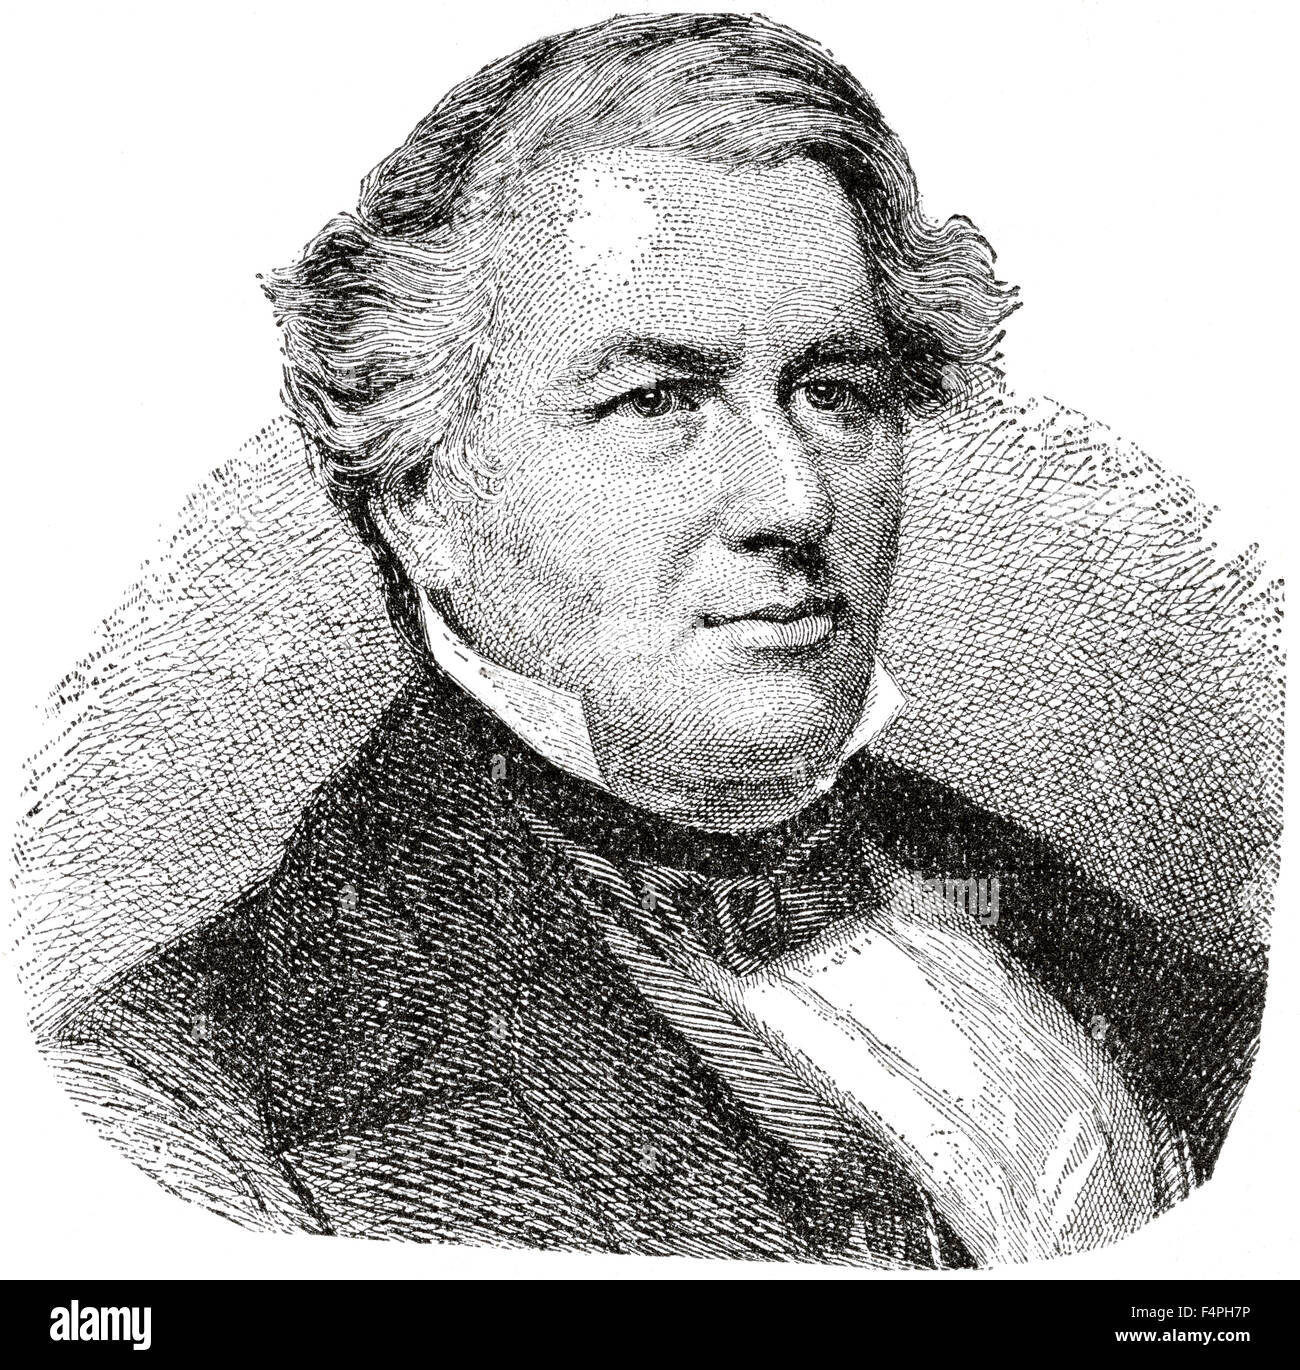 Millard Fillmore (1800-74), 13th President of the United States, Engraving, 1889 Stock Photo